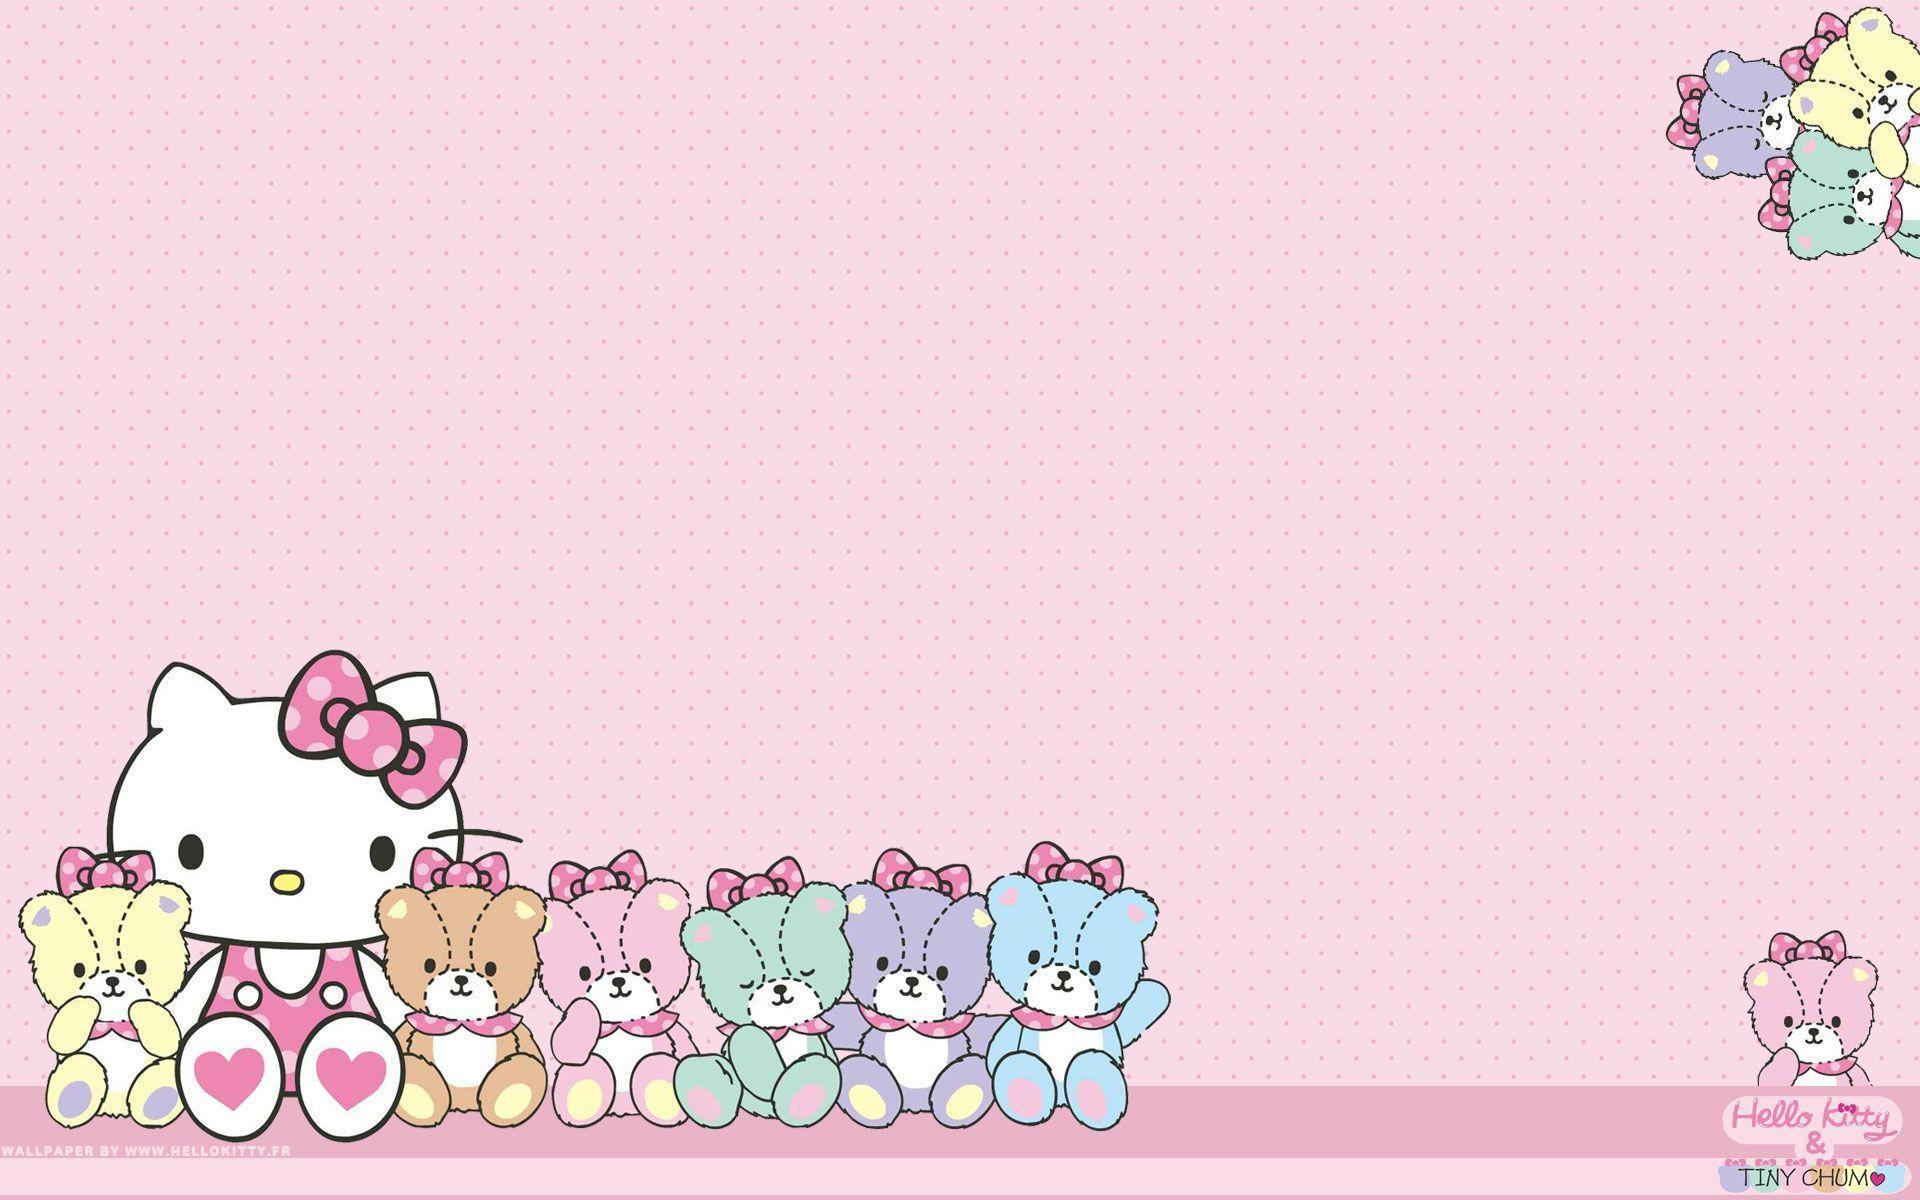 wallpaper cartoon newdesk cute - photo #36